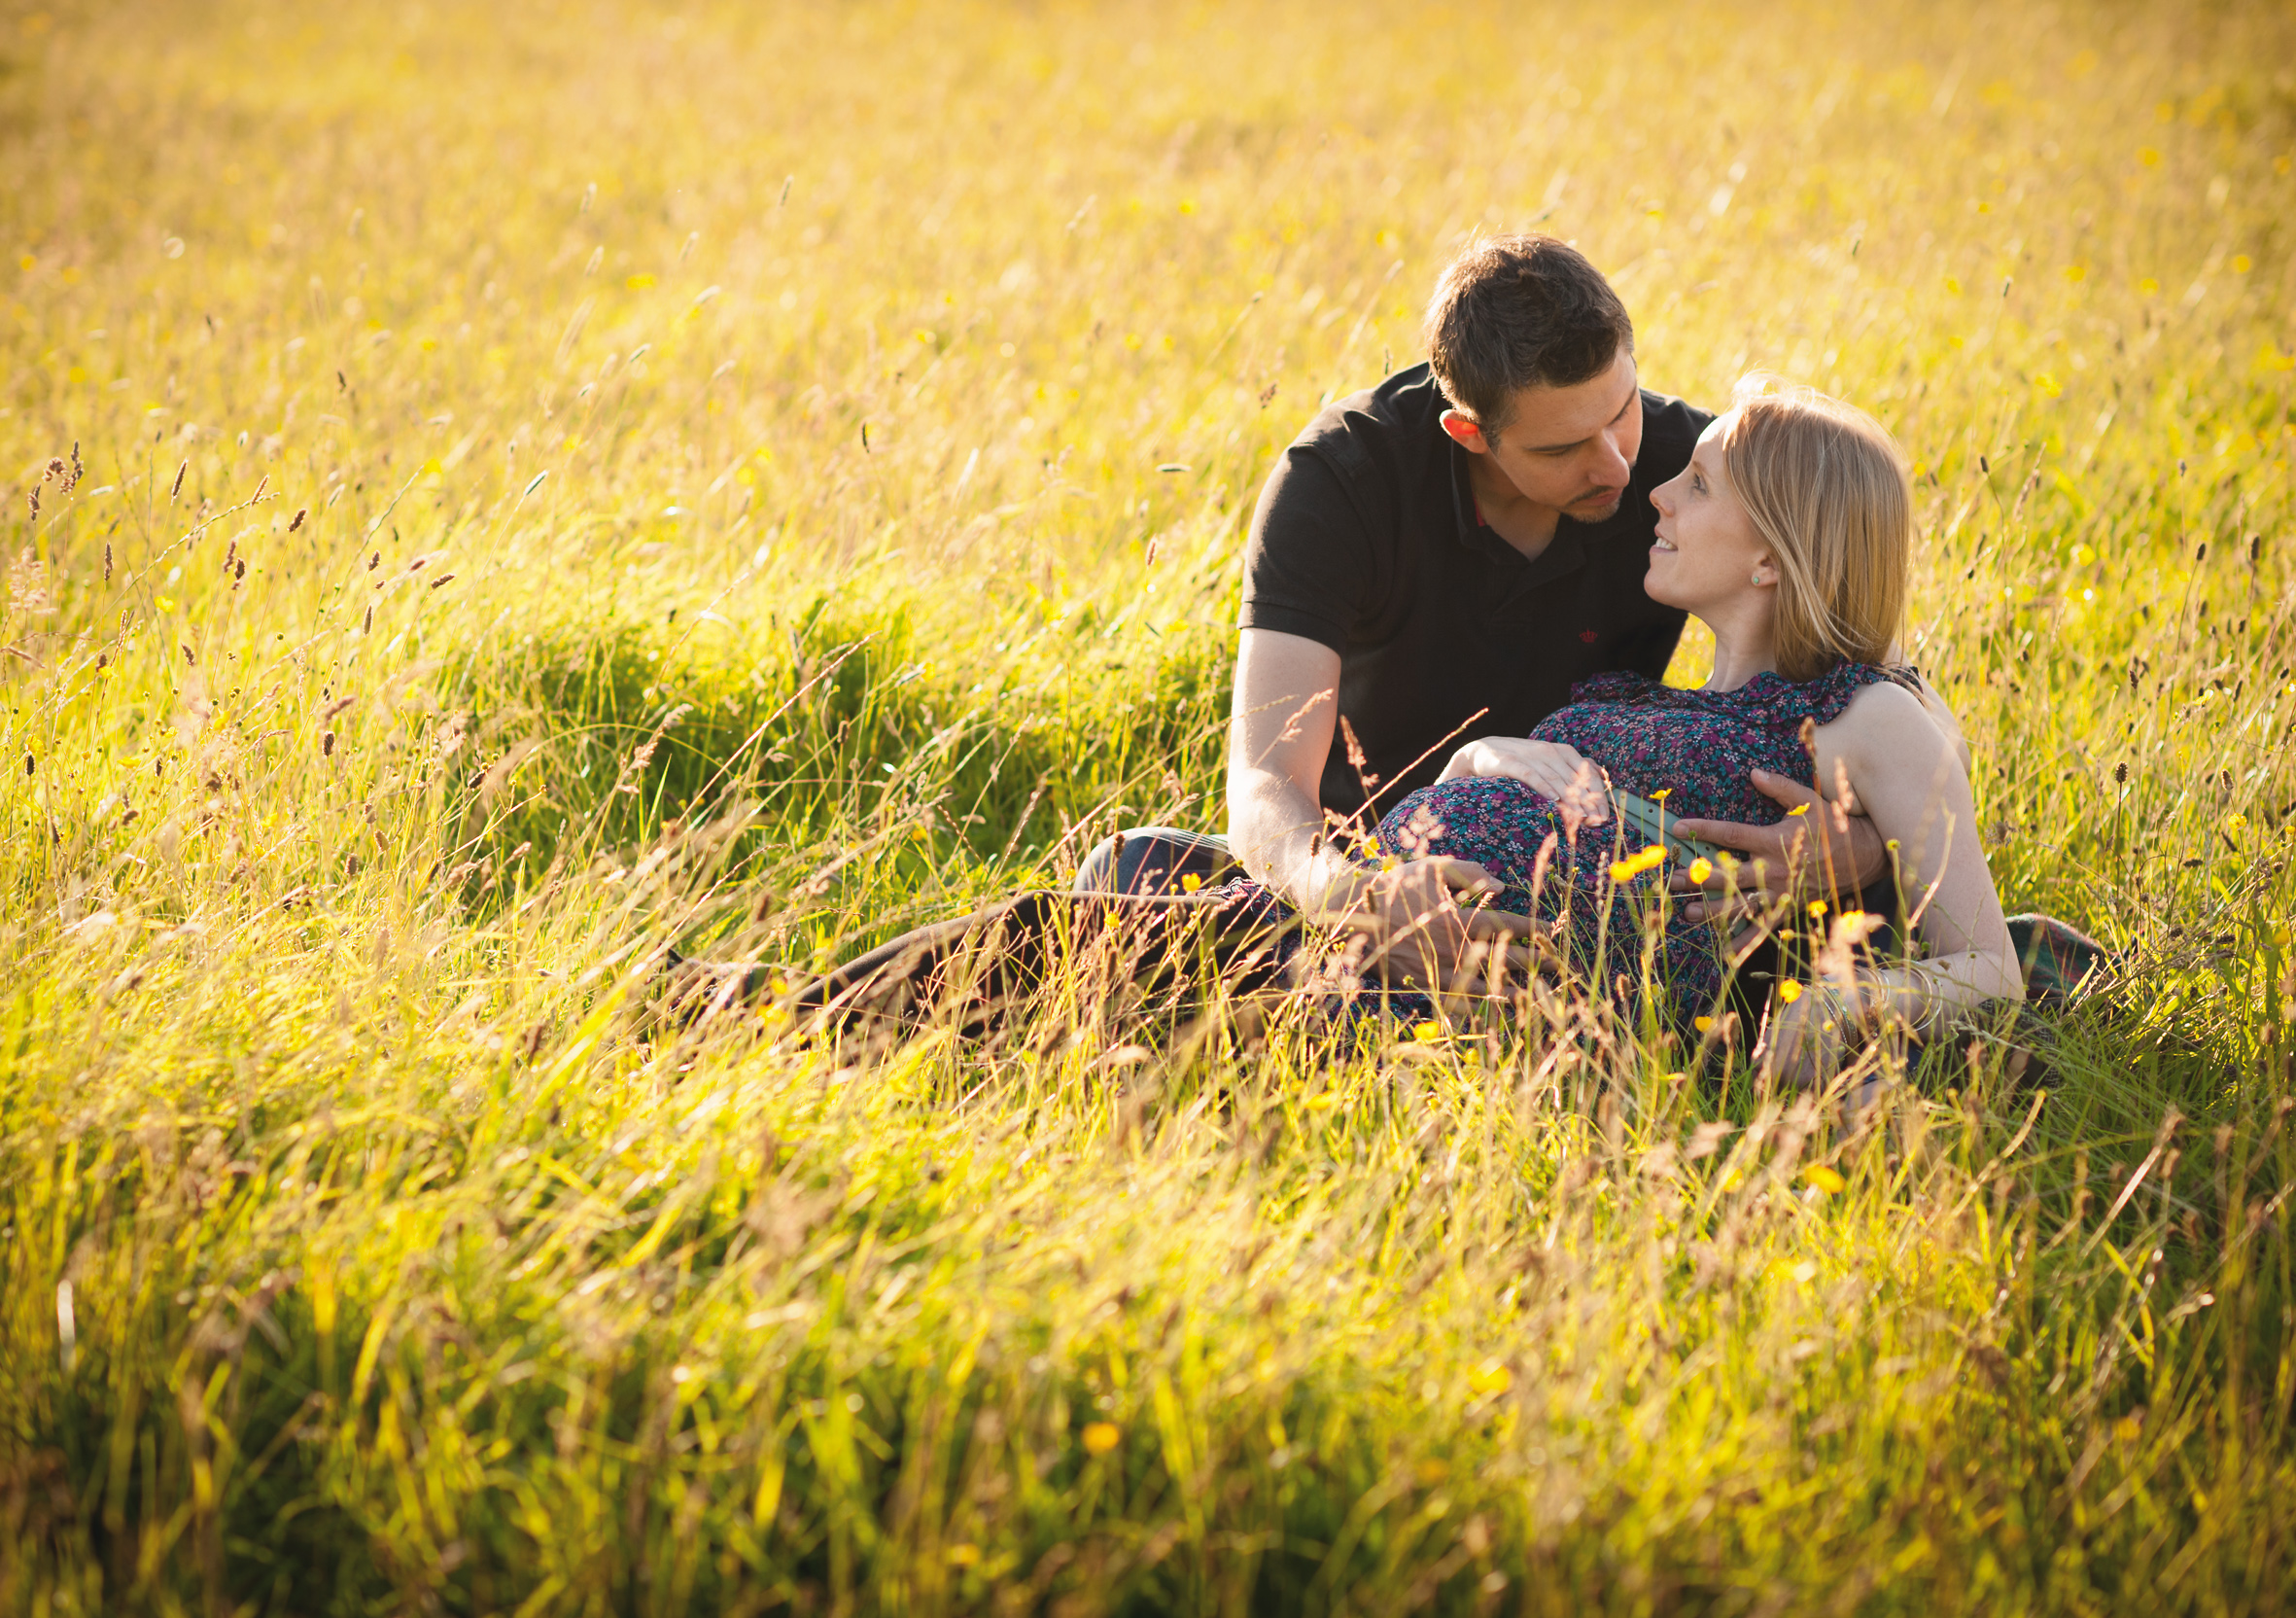 sunset outdoor family photography field